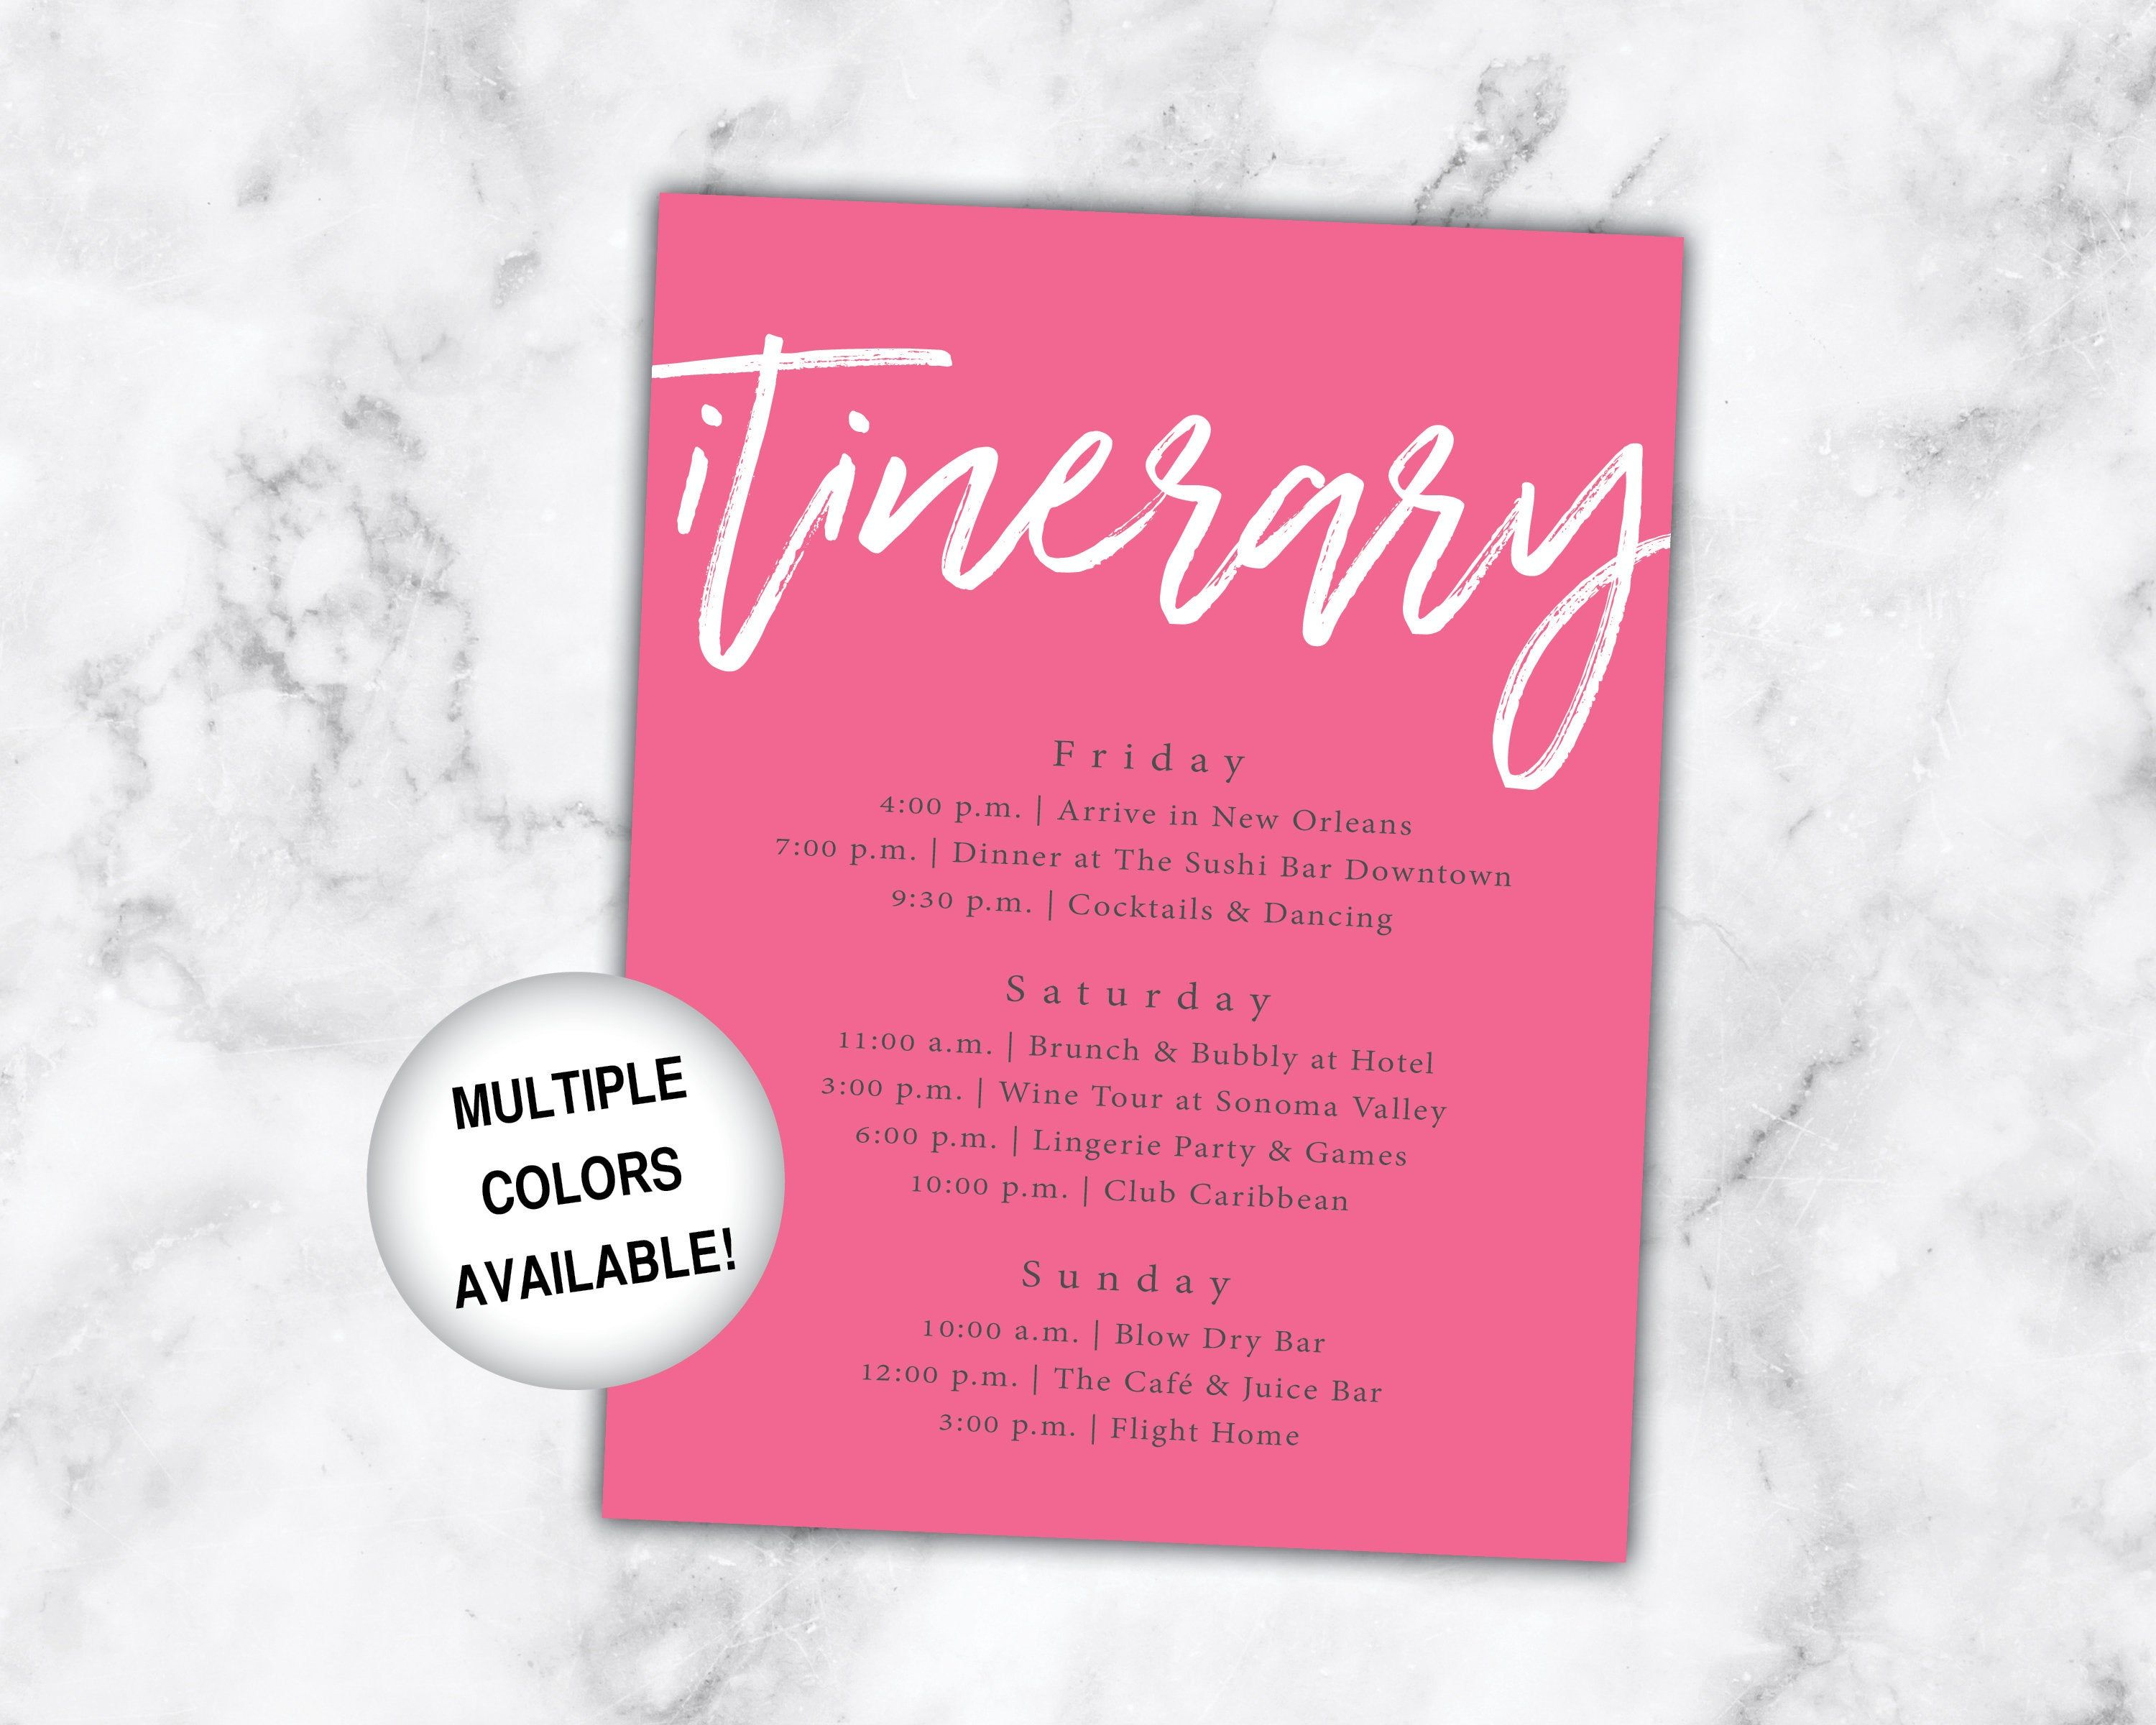 Bachelorette Itinerary Printable Itinerary For Bachelorette Etsy Bachelorette Itinerary Bachelorette Party Itinerary Bachelorette Party Invitations